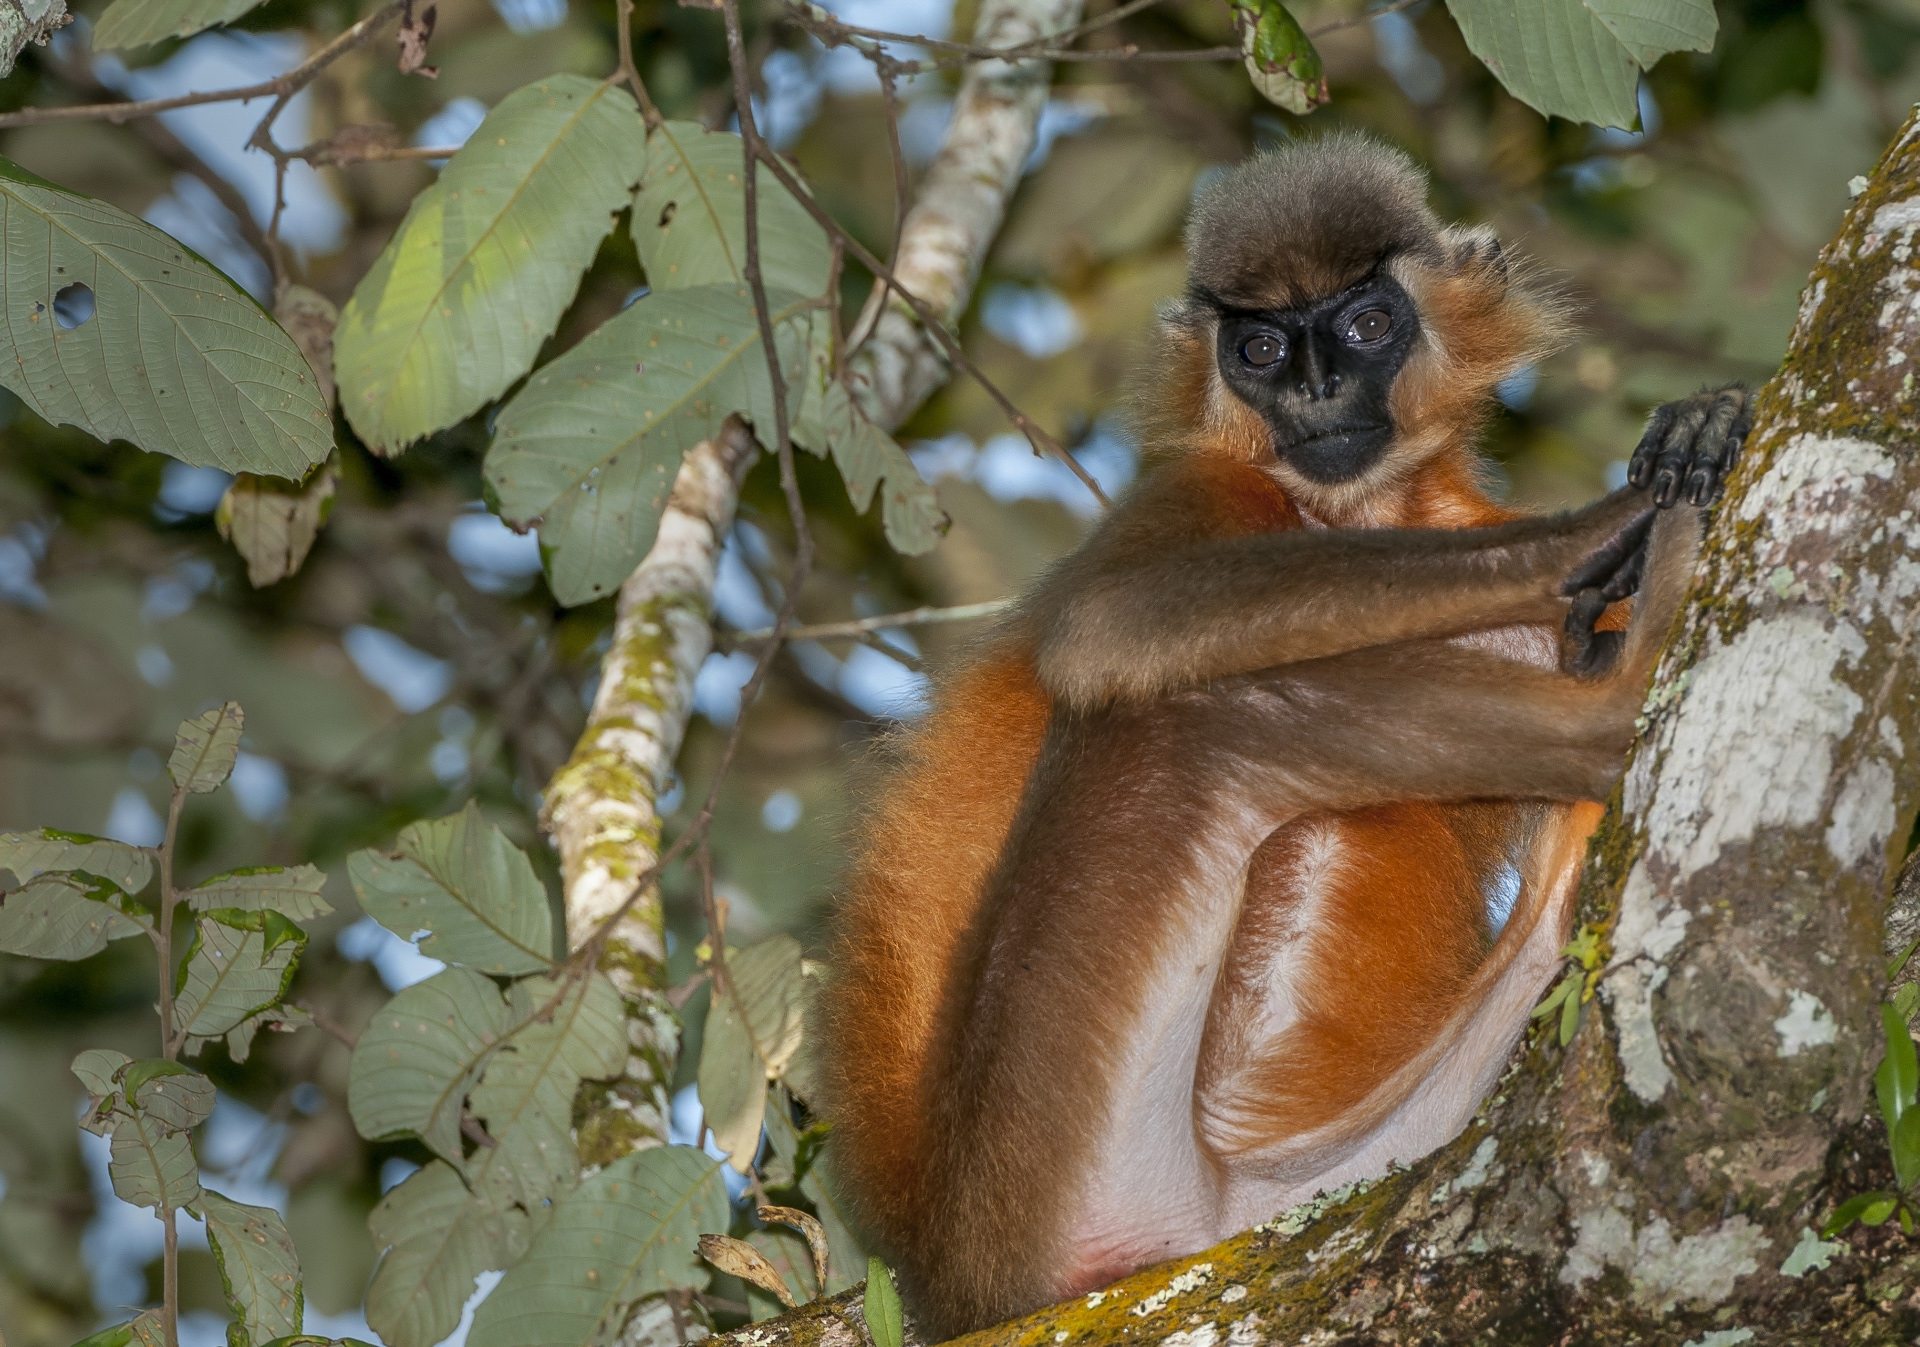 On a good sunny day, capped langurs with their black cap and bright golden-orange fur, is easily spotted in a dense canopy. However, their population is on a steep decline and the species is listed as 'Vulnerable' on the IUCN Red List. Photo: Udayan Borthakur